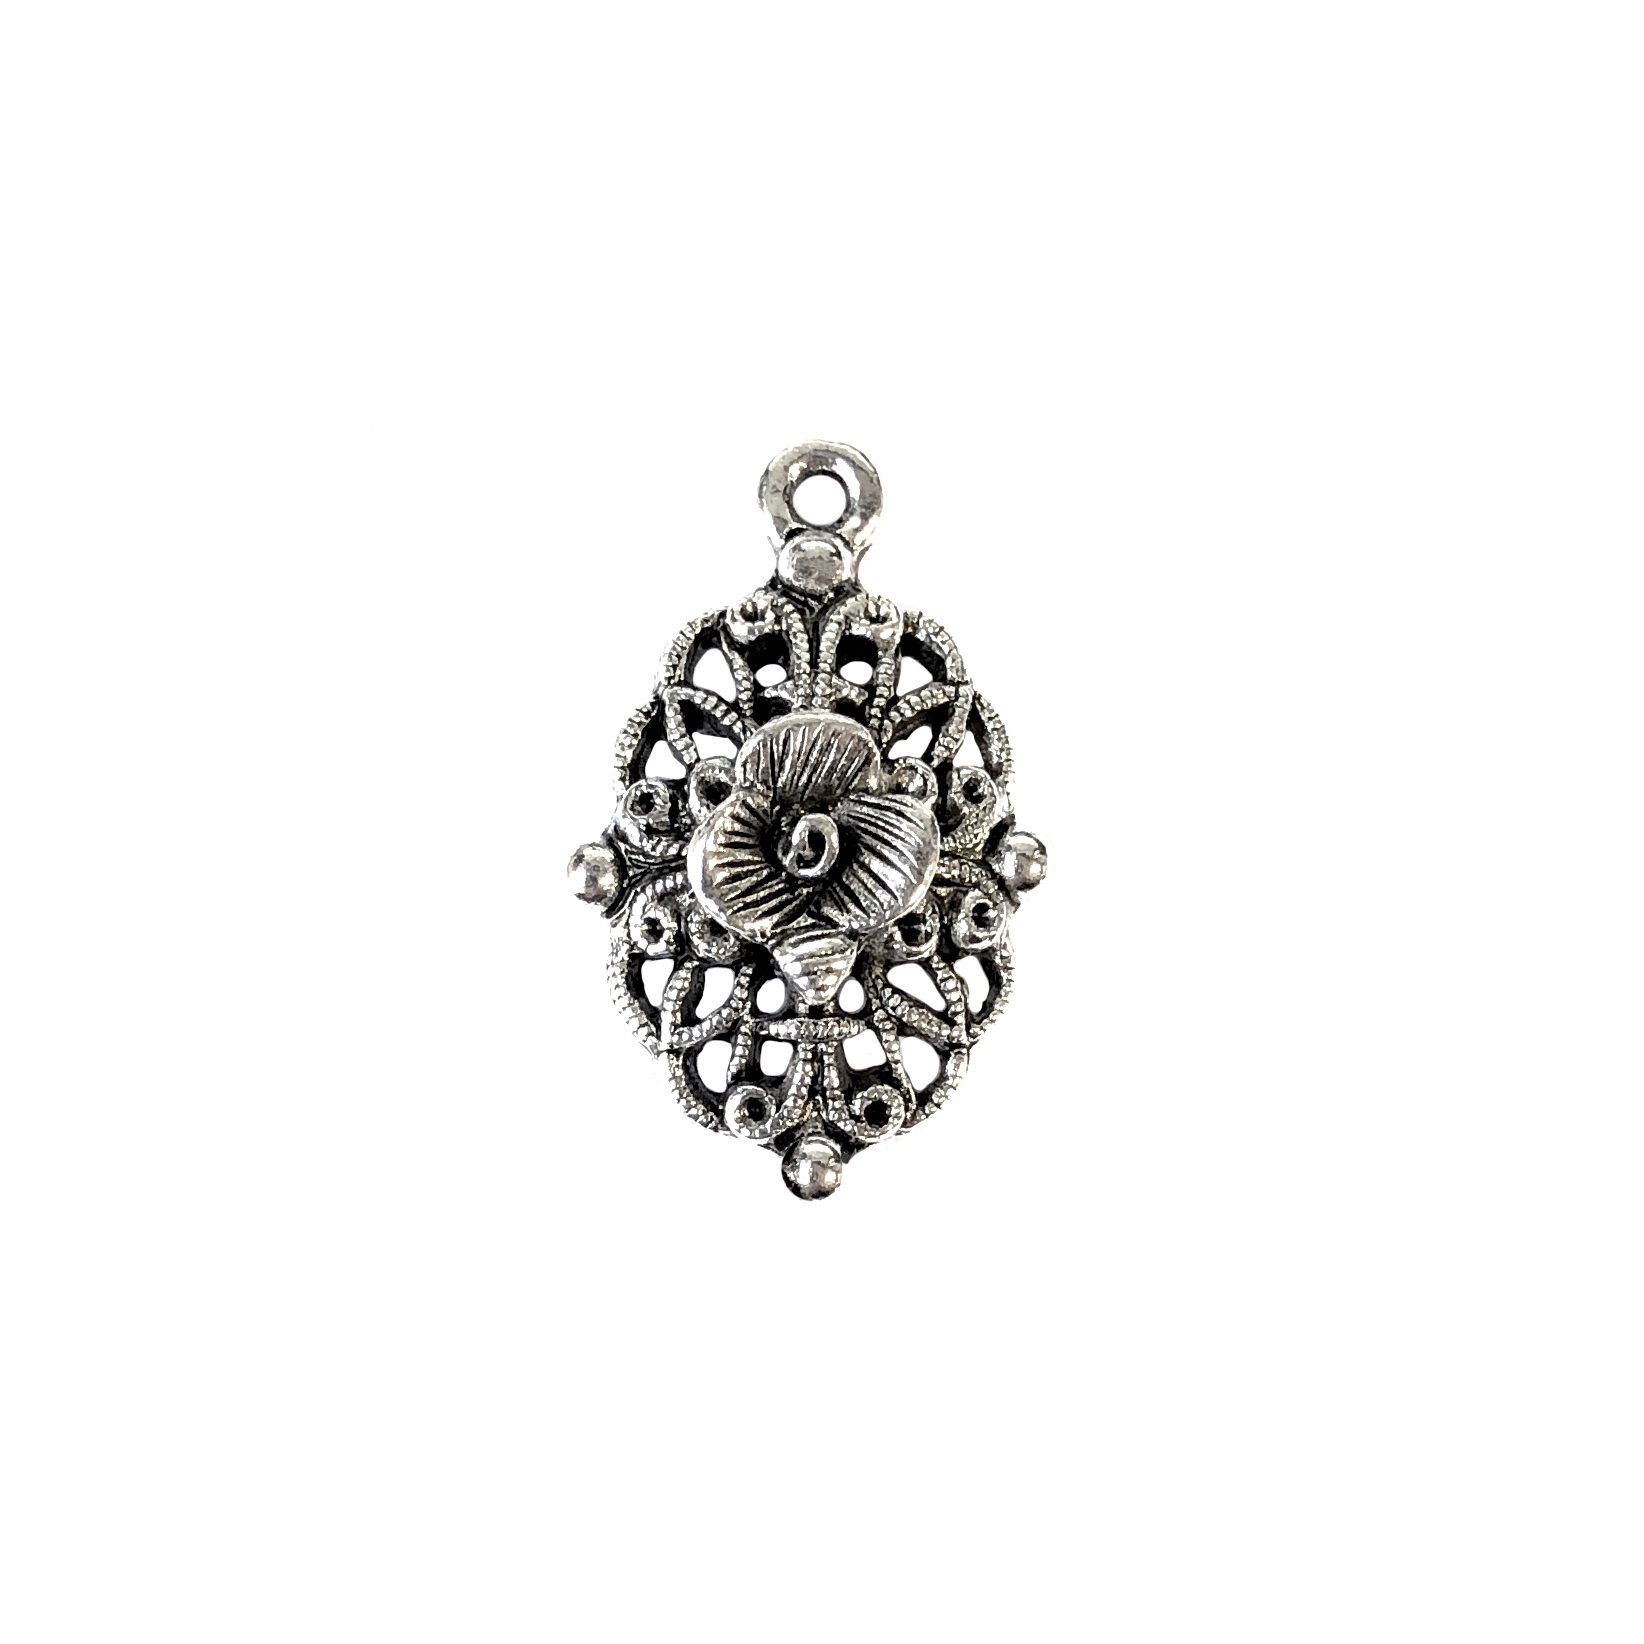 filigree flower charm, filigree, old silver, lead free, pewter castings, cast pewter jewelry parts, vintage, 1928 Jewelry, B'sue Boutiques, B'sue by 1928, vintage charms, vintage jewelry findings,antique silver pewter jewelry findings, us made, 01039